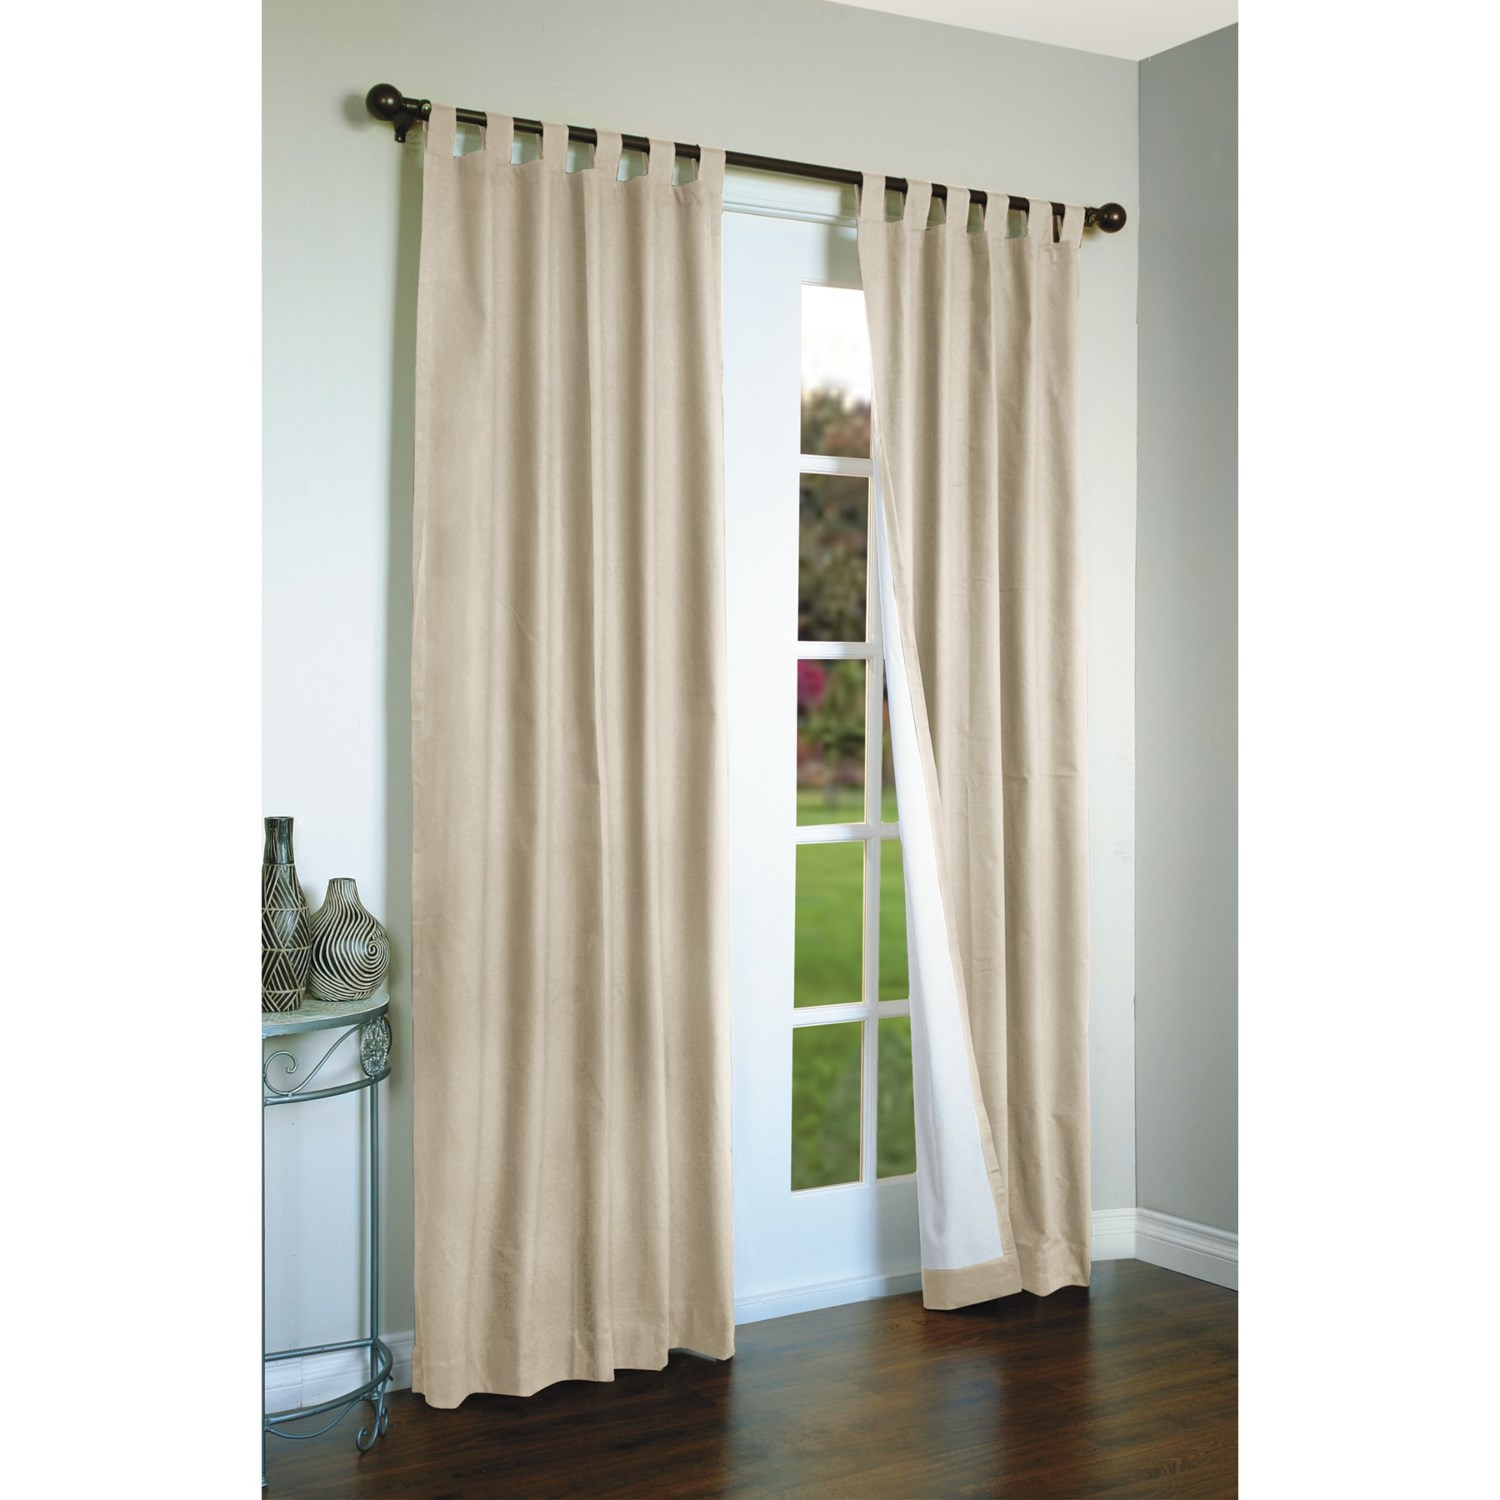 Thermalogic Weathermate Curtains 80x54 Tab Top Insulated In Natural